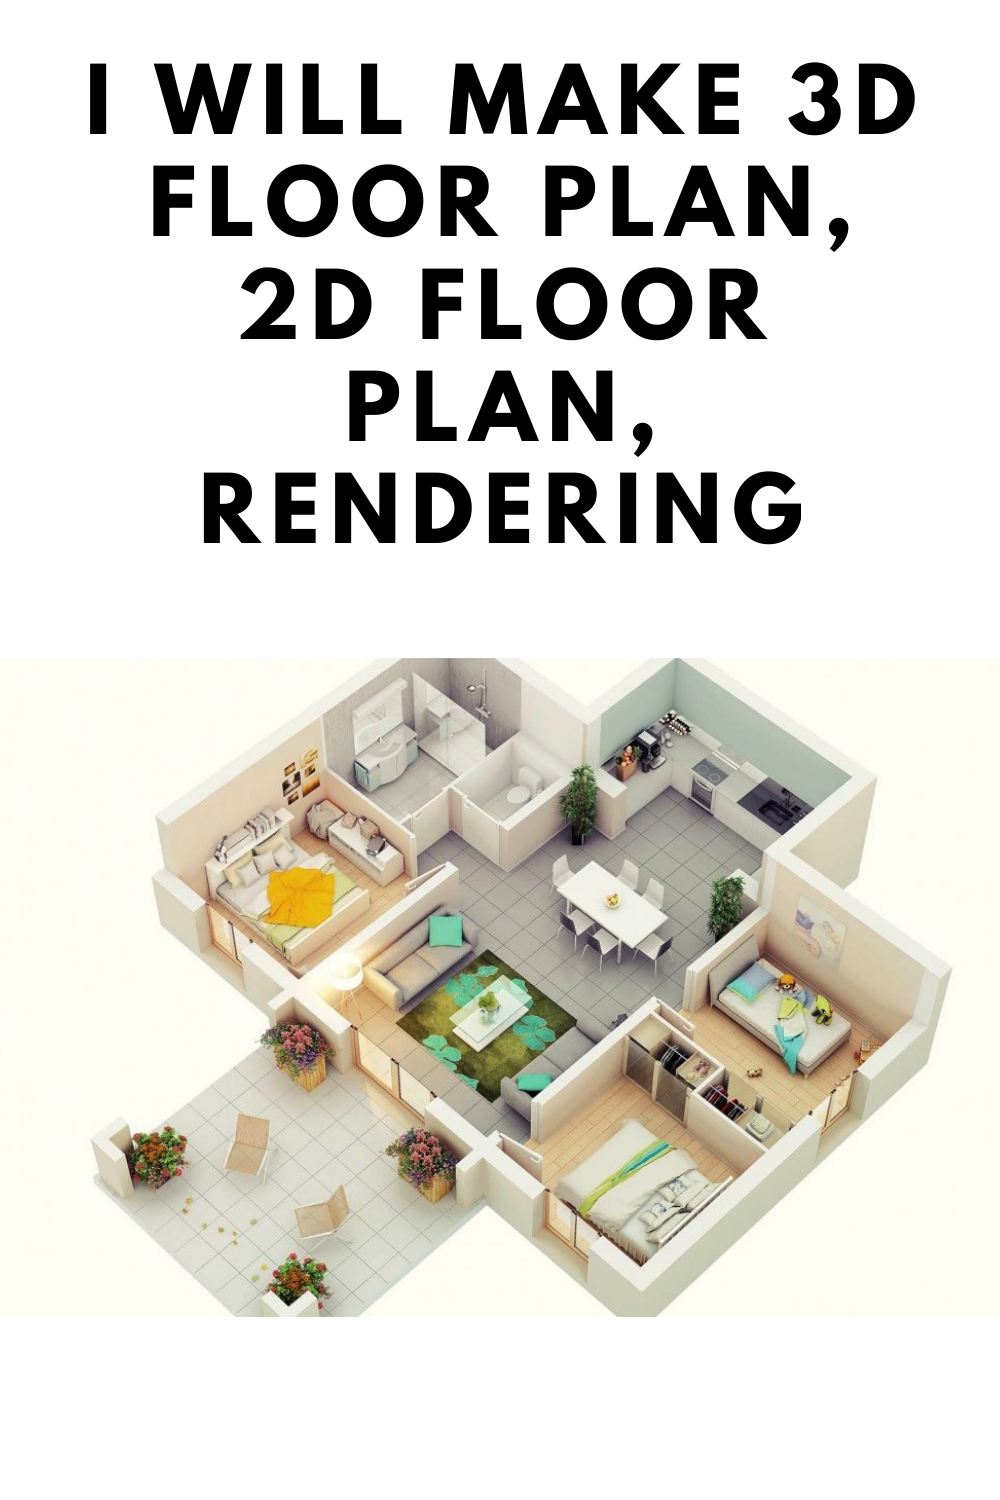 I Will Make 3d Floor Plan 2d Floor Plan Floor Plans Floor Plan Design Floor Plan Design Floor Plans House Layout Plans